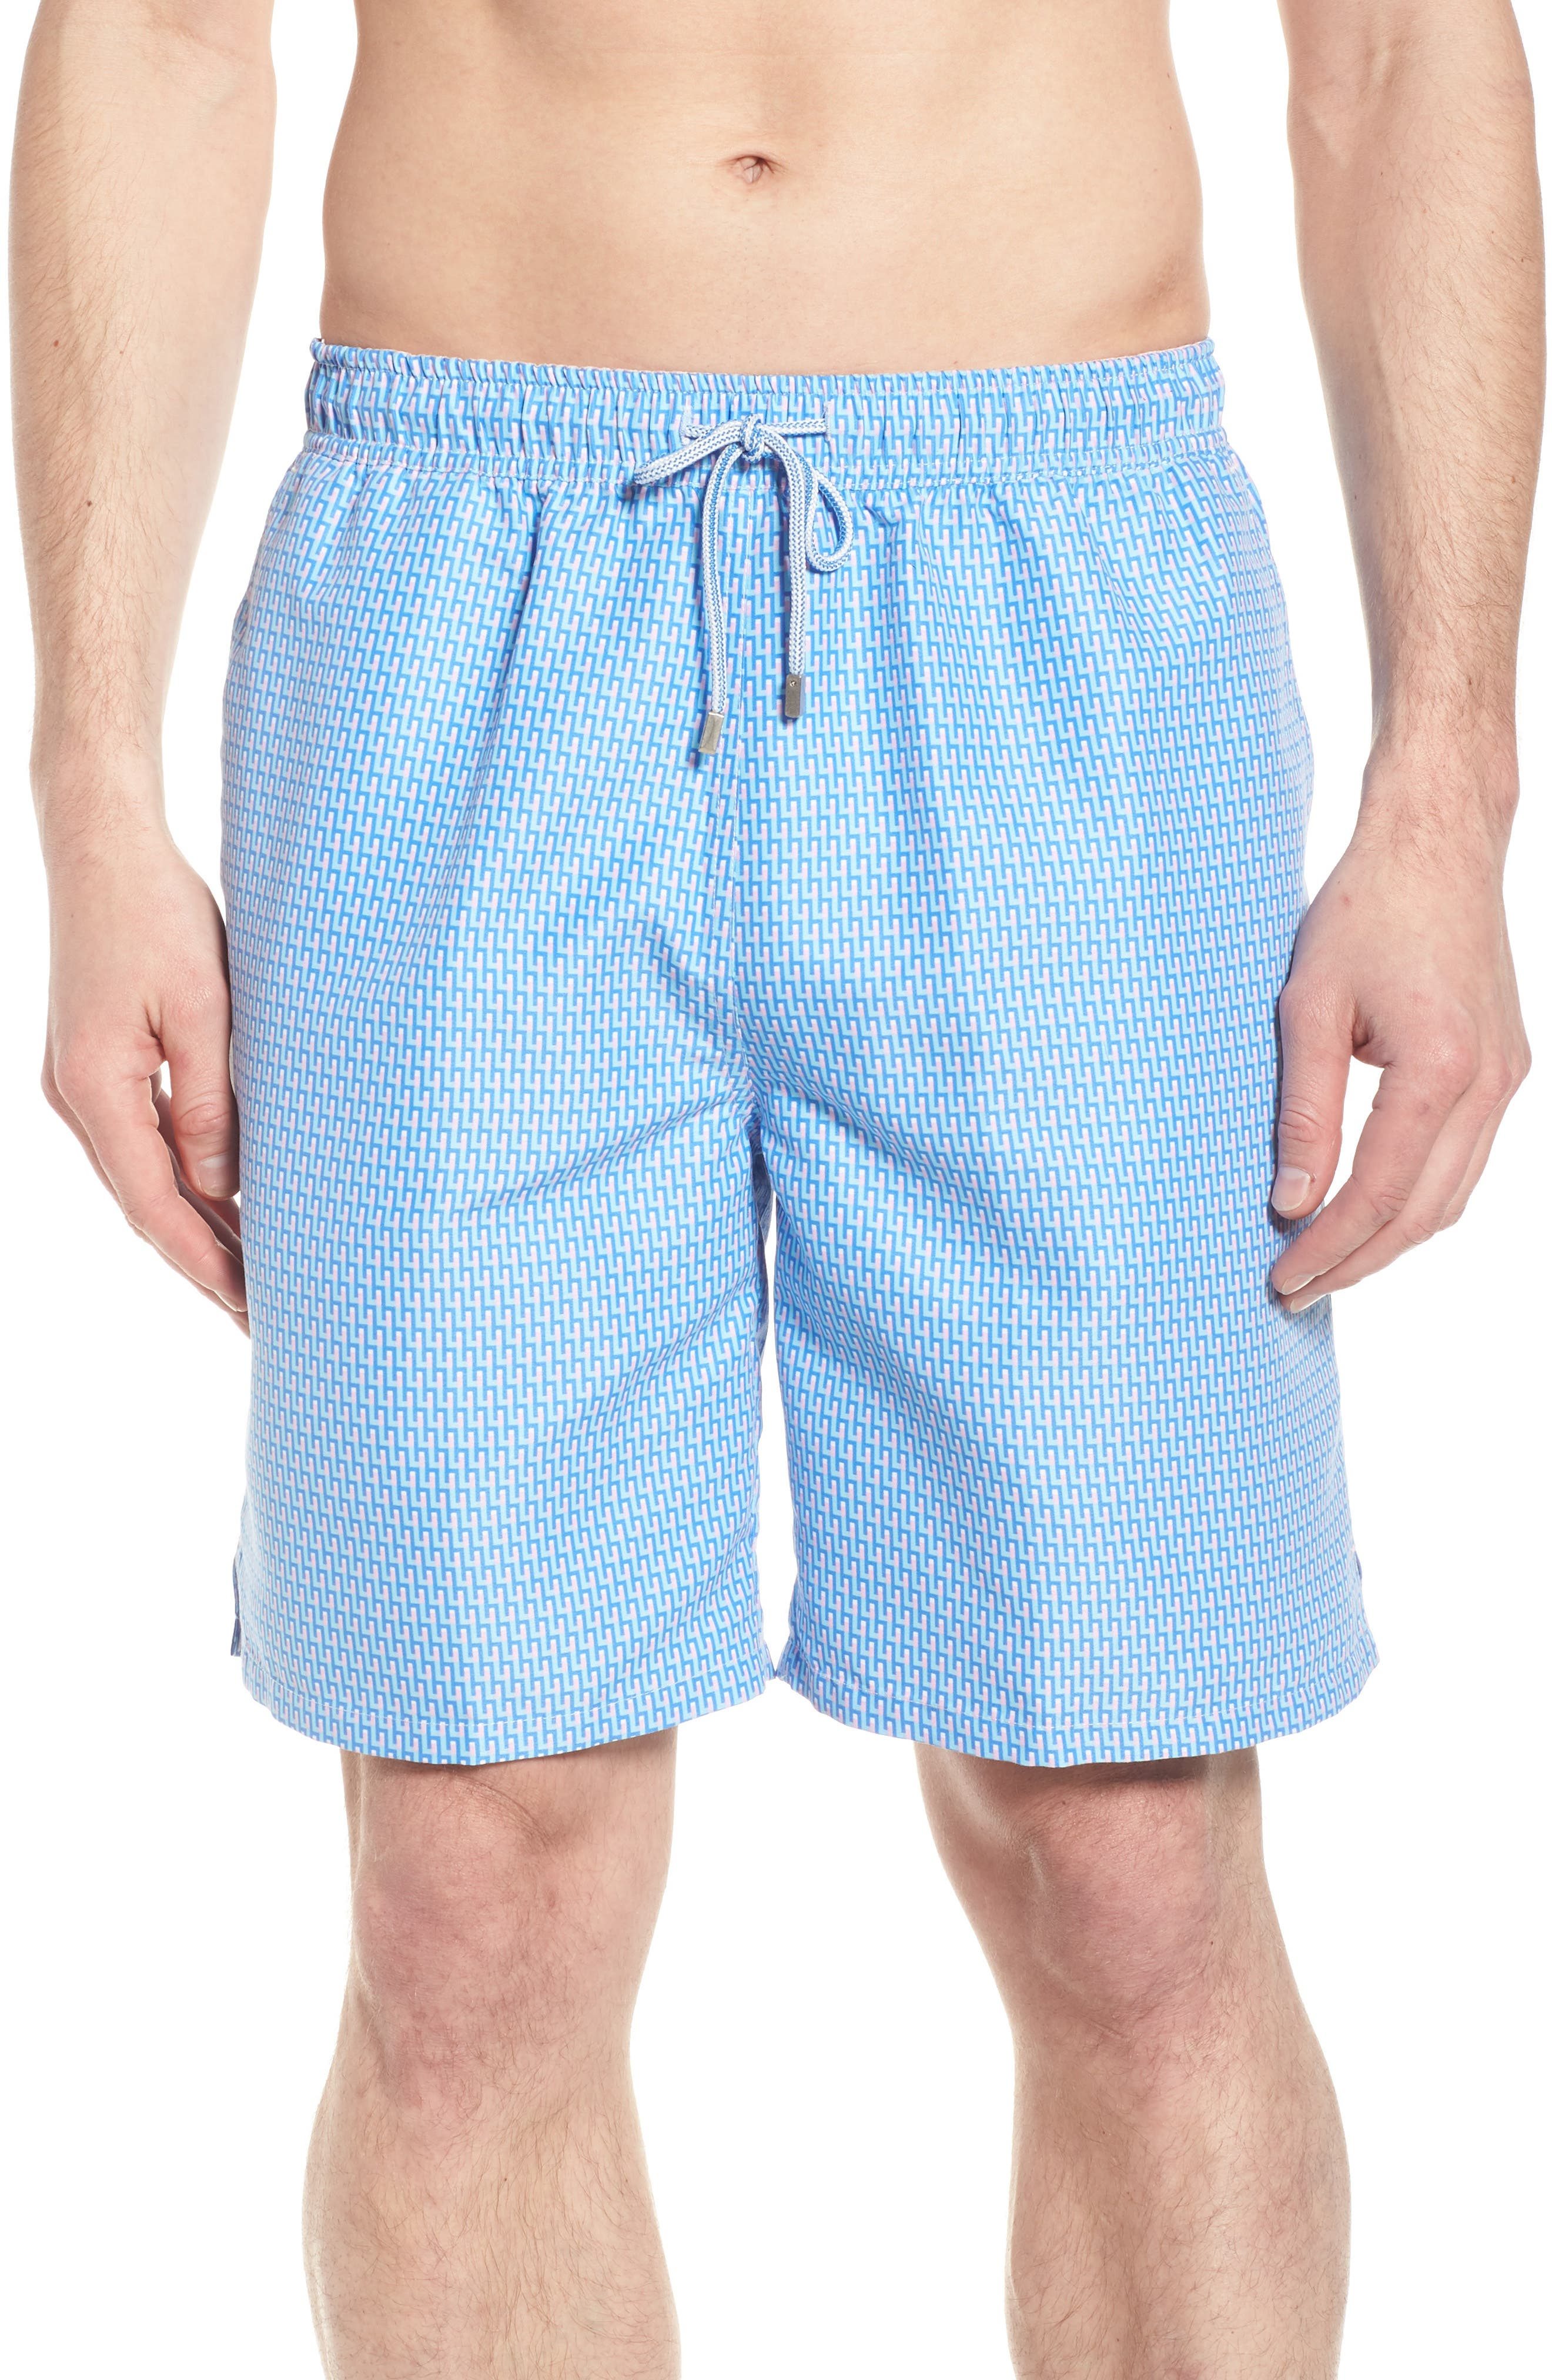 Mazed & Confused Swim Trunks,                             Main thumbnail 1, color,                             CERAMIC